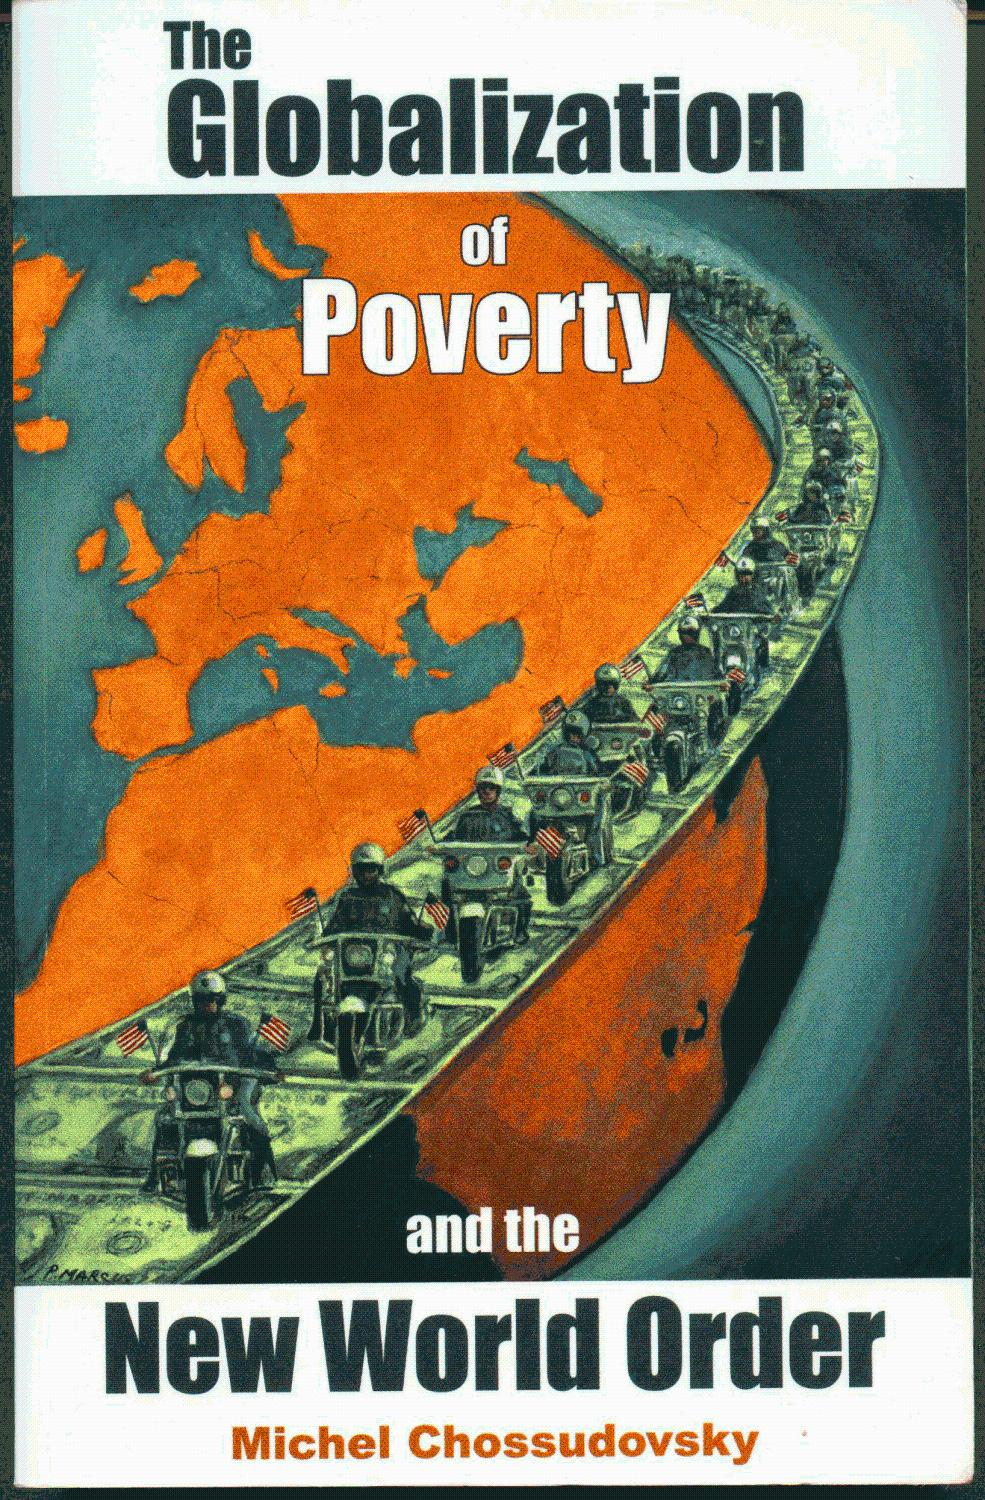 the good news today  u2013 the globalization of poverty and the new world order